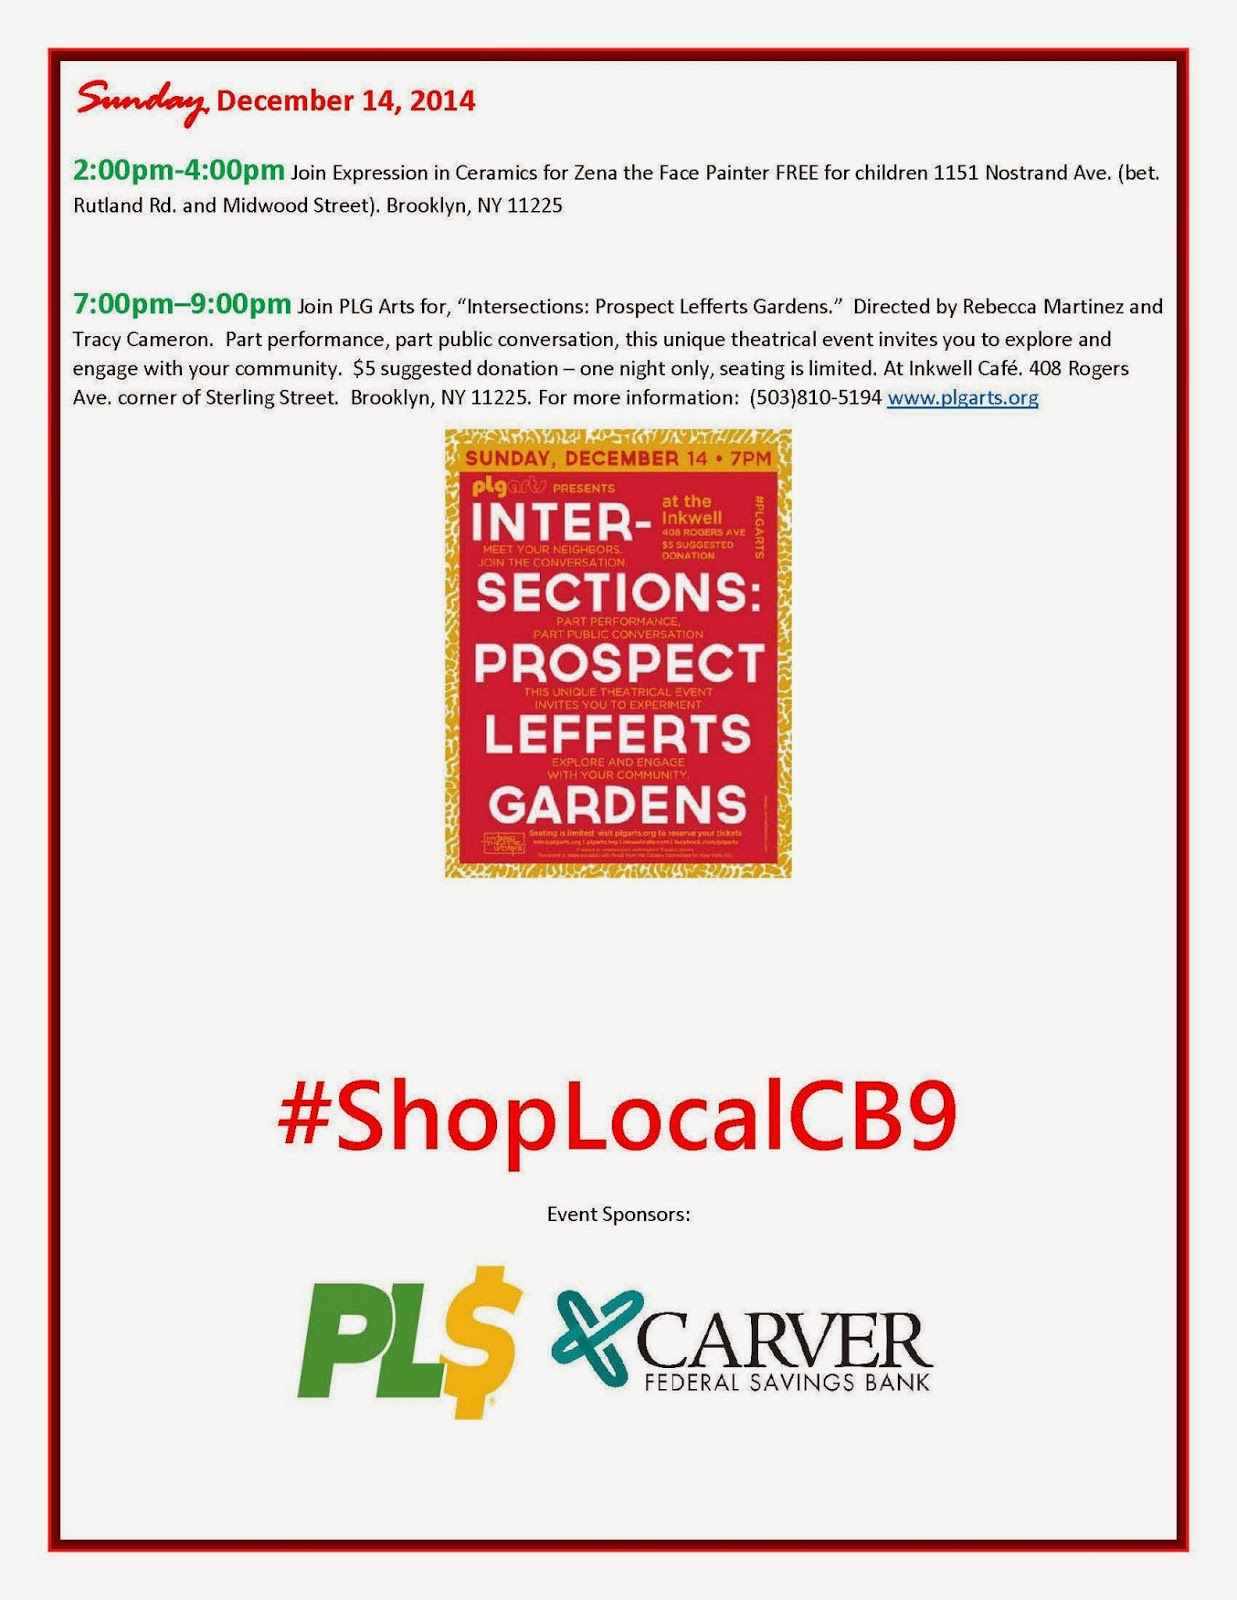 nostrand avenue merchants association shop local cb9 nama highlights 13th 14th